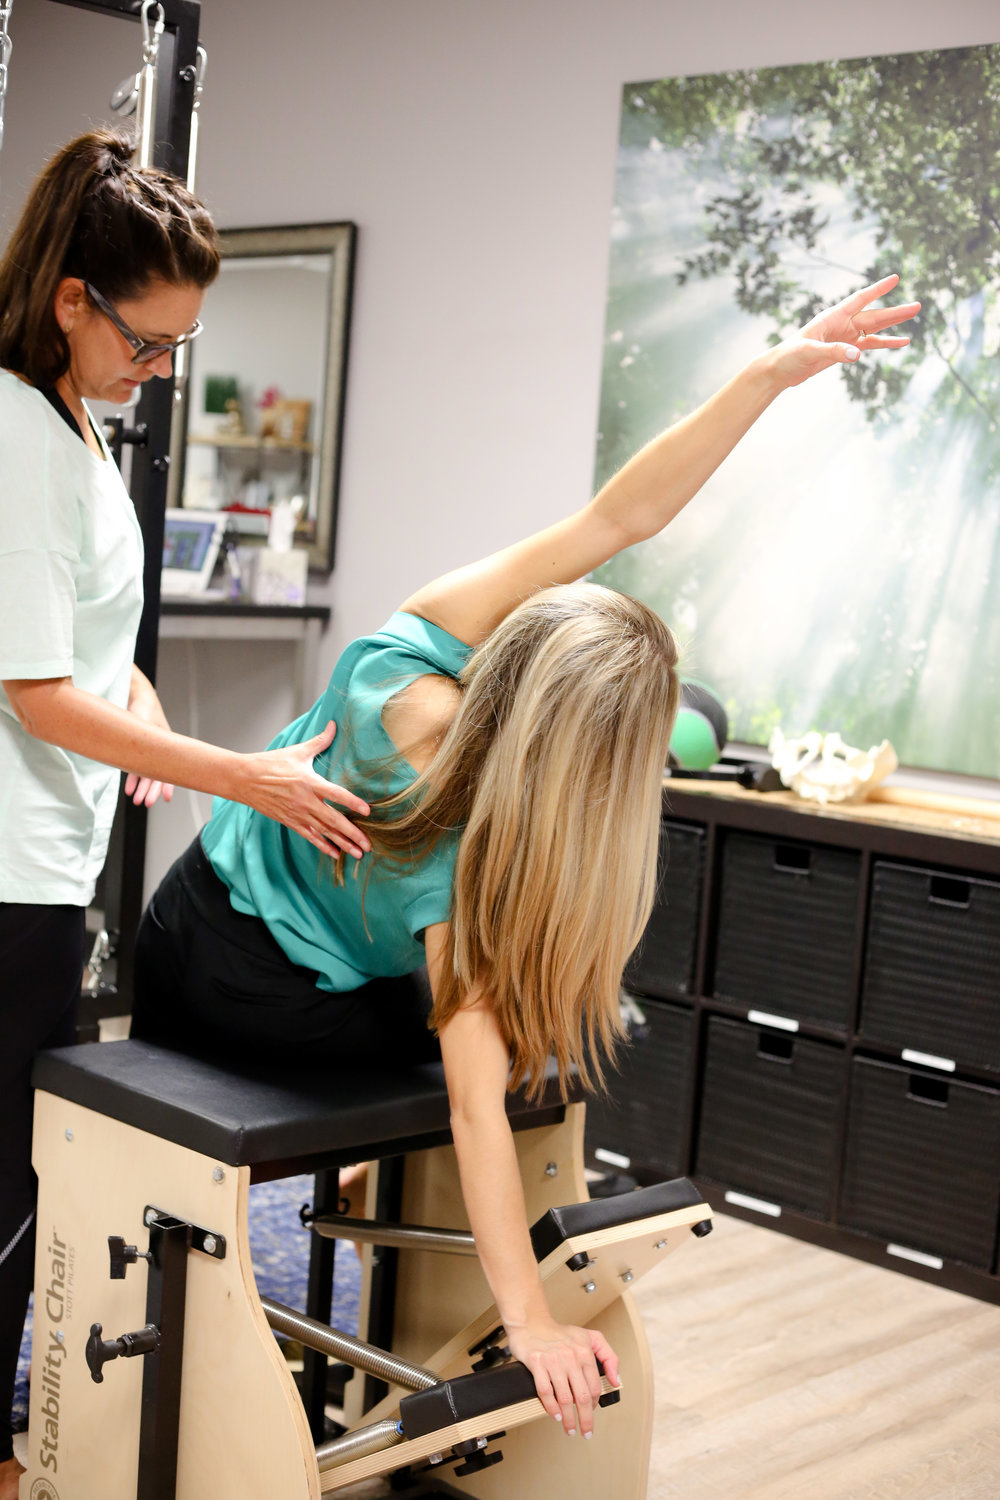 Pilates Orange County and Tustin, Sarton Physical Therapy